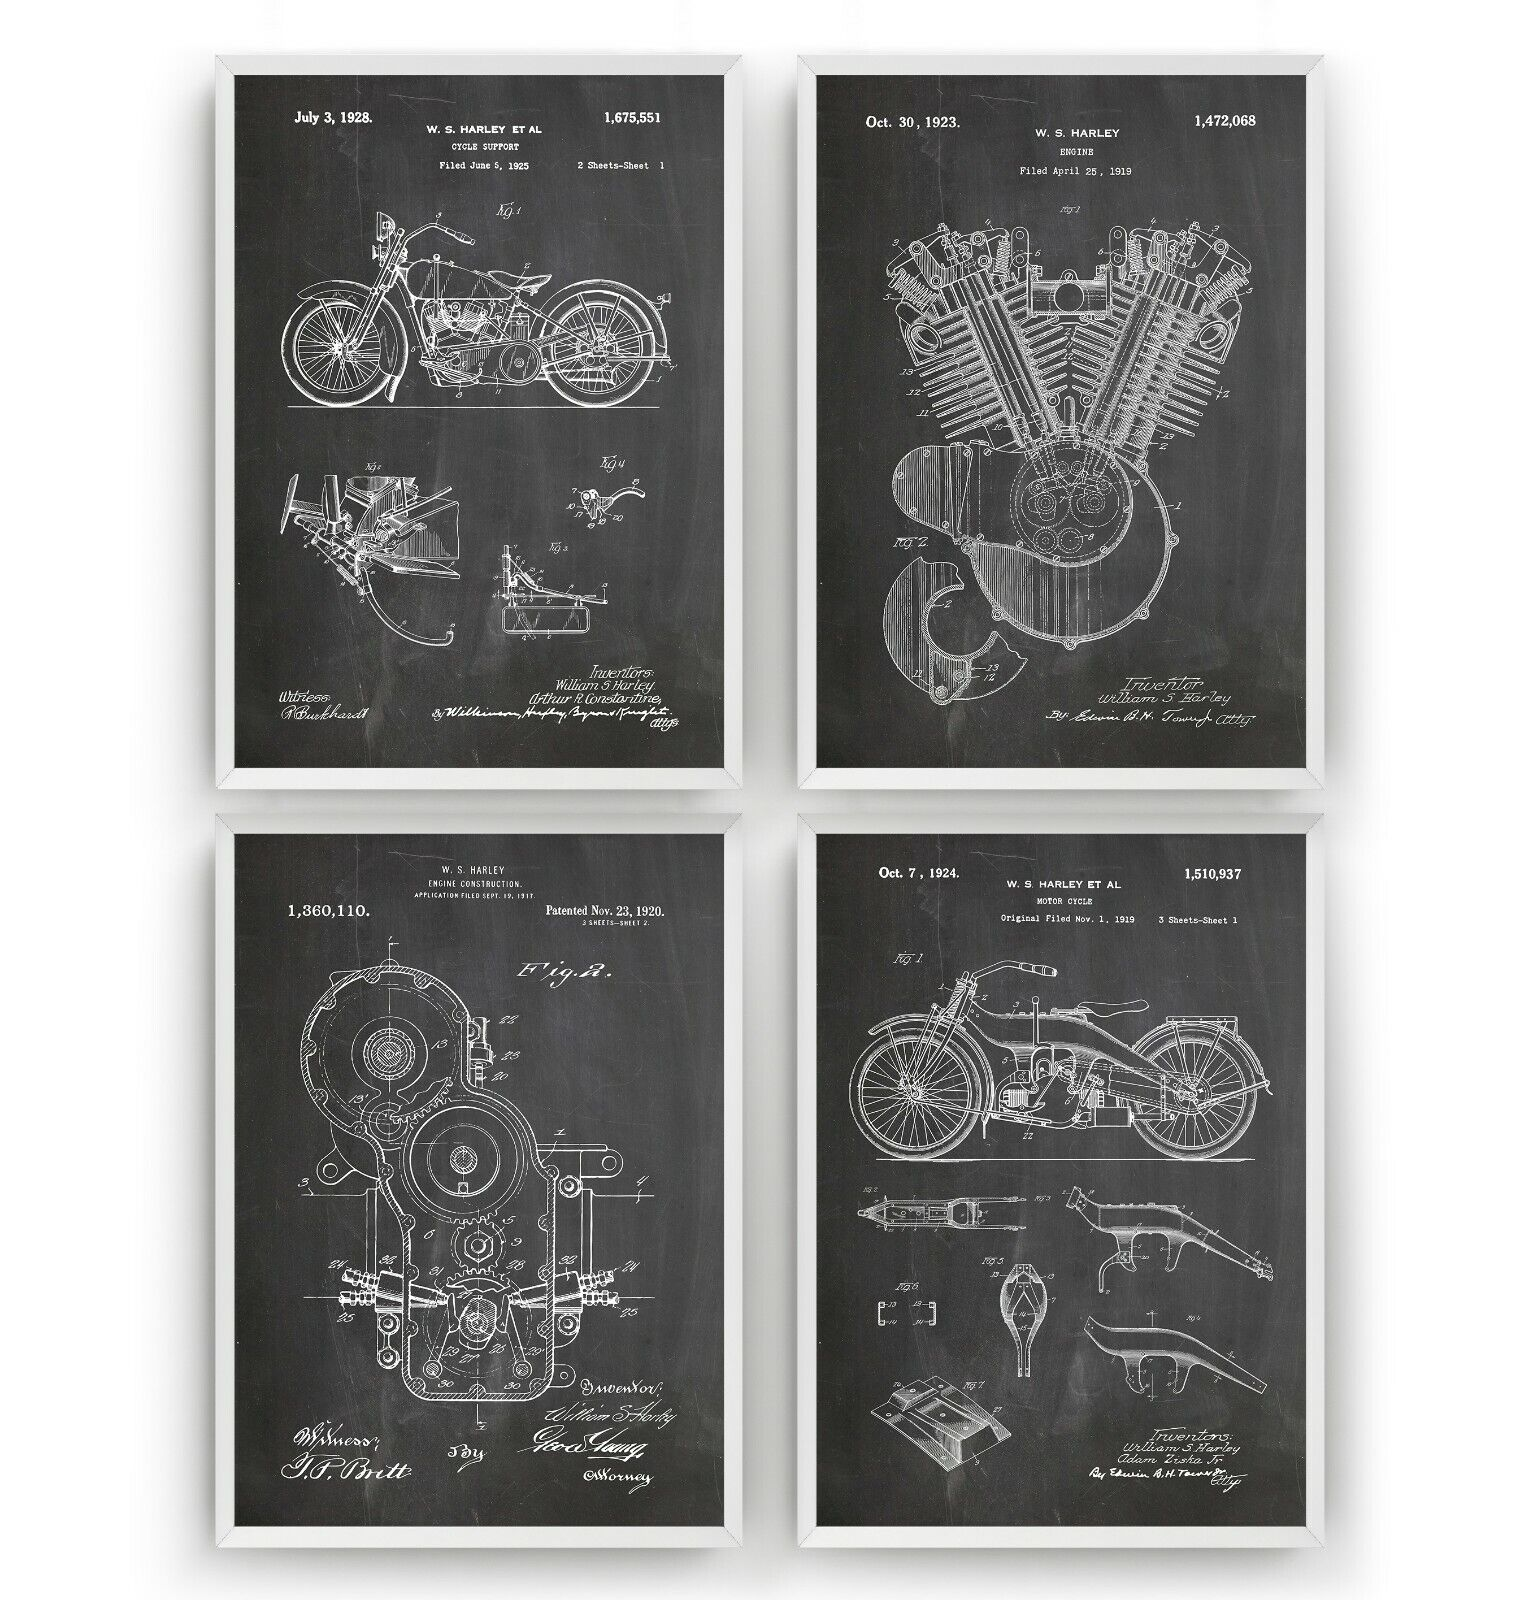 Harley Davidson Patent Art Prints - Set Of 4 - Poster Wall Decor Gift - Unframed